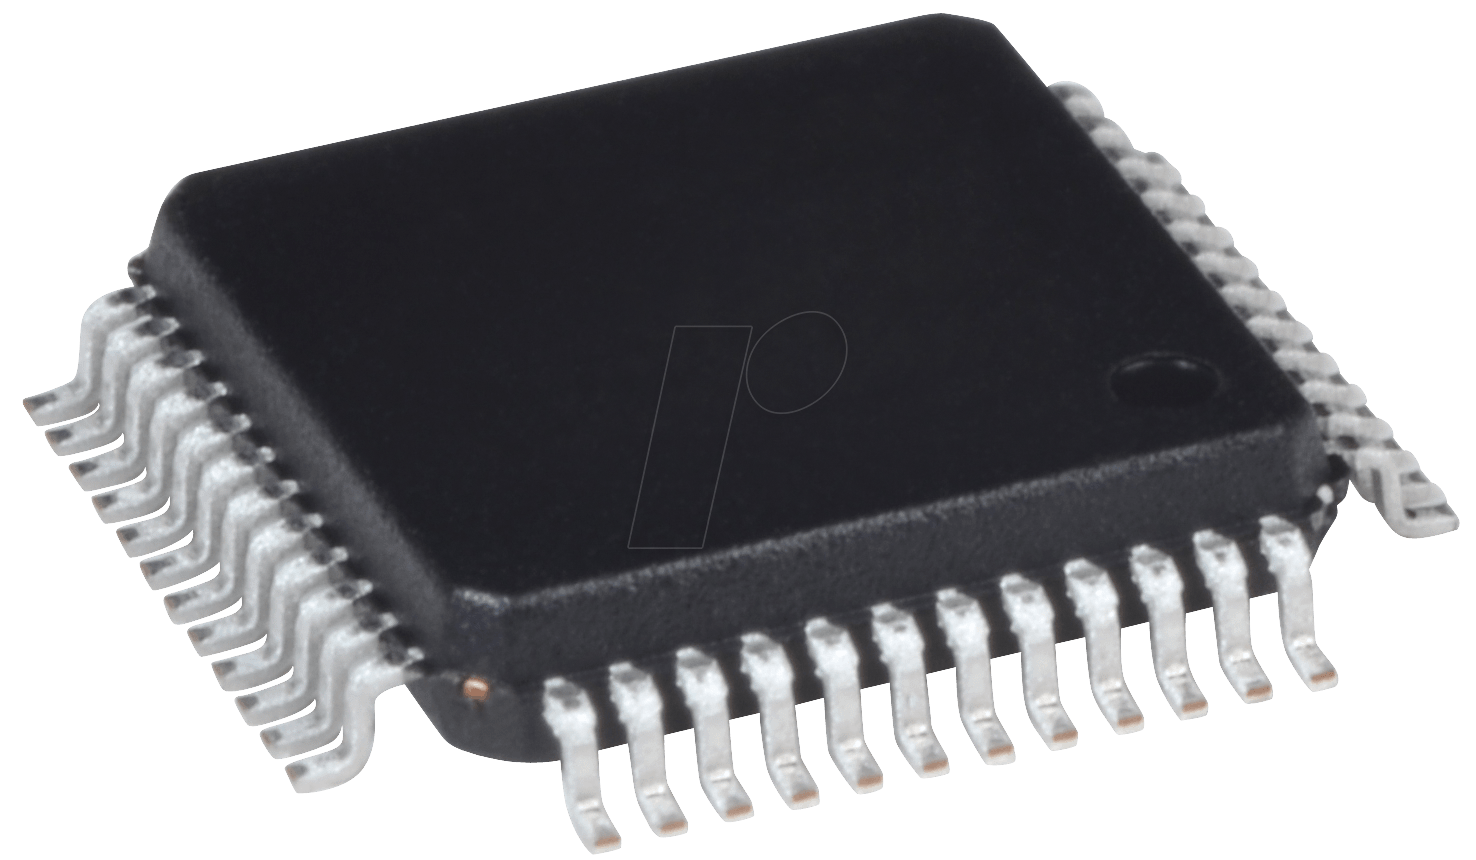 Microcontroller PNG Images Transparent Free Download.